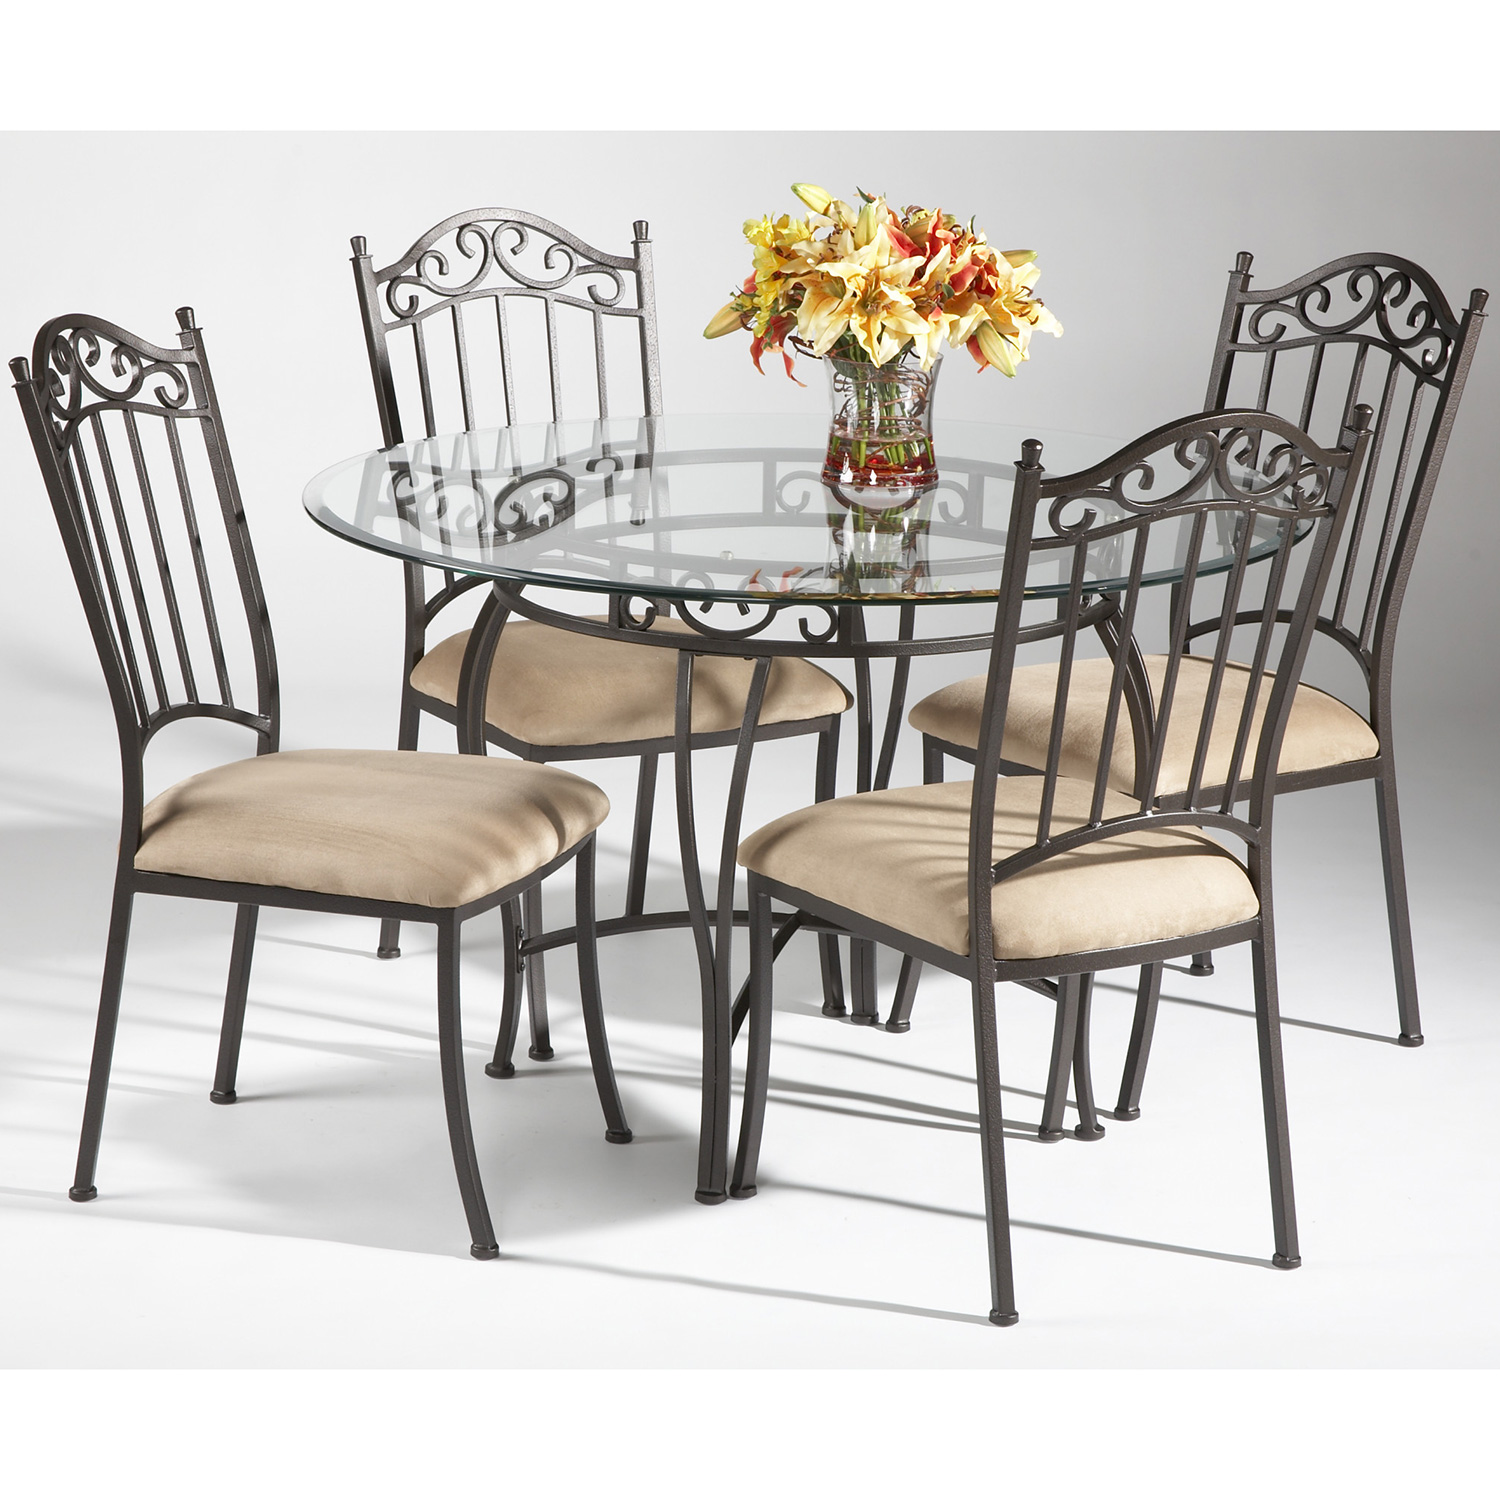 Chintaly 0710 5 Pcs Wrought Iron 5 Piece Round Dining Set In Antique Taupe